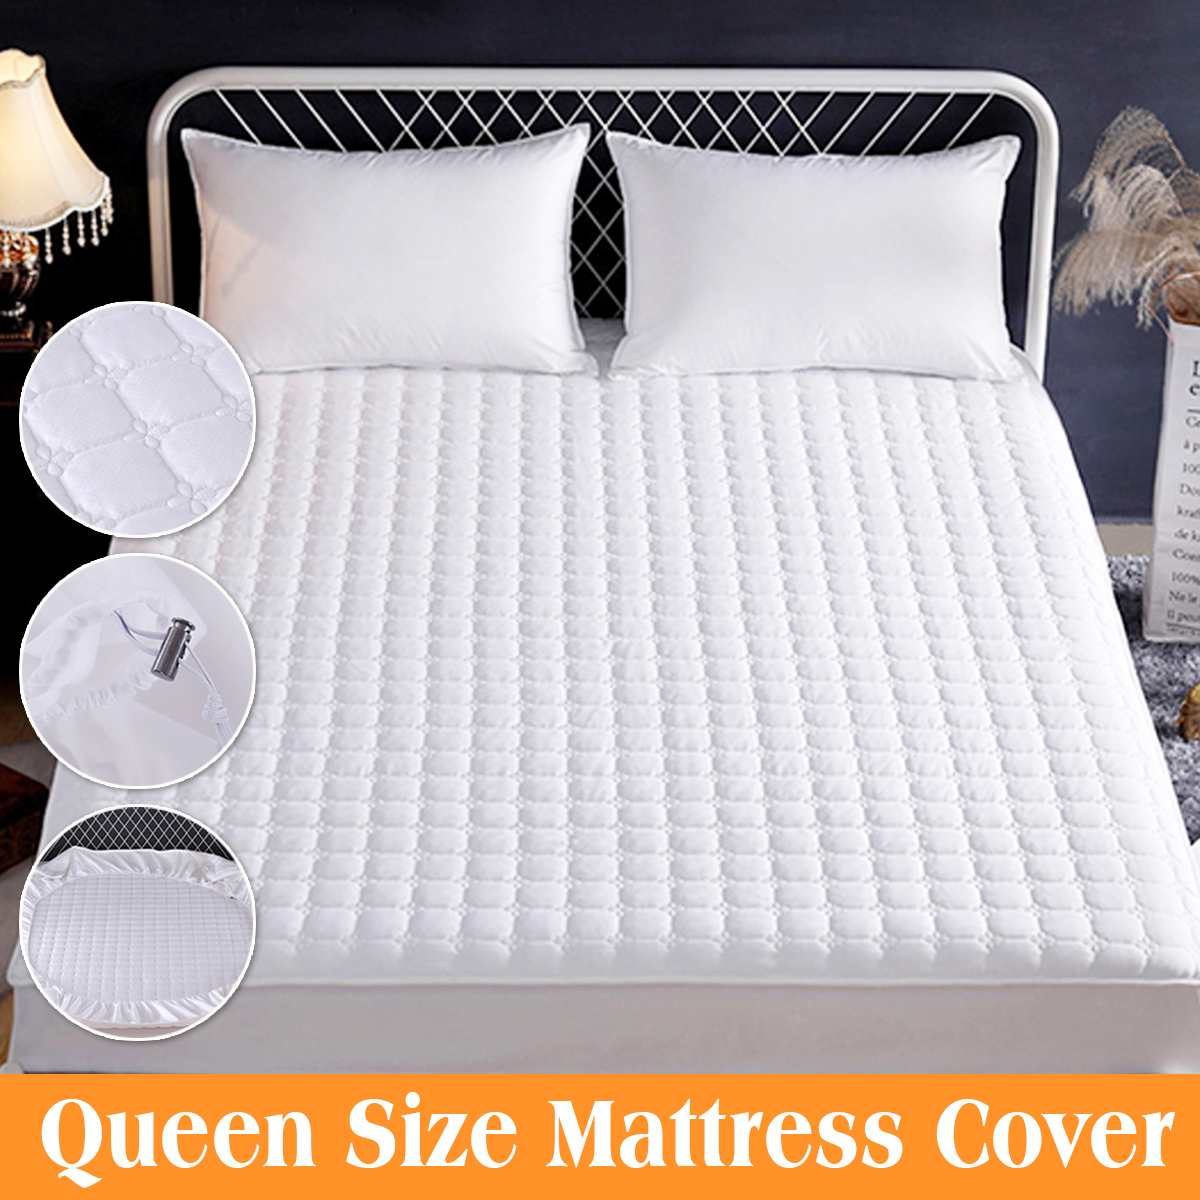 Large Queen Size Mattress Pad Cover Topper Protector Quilted Fitted Prevent Bacteria For Home Hotel Bed Top Pad Mattress Cover